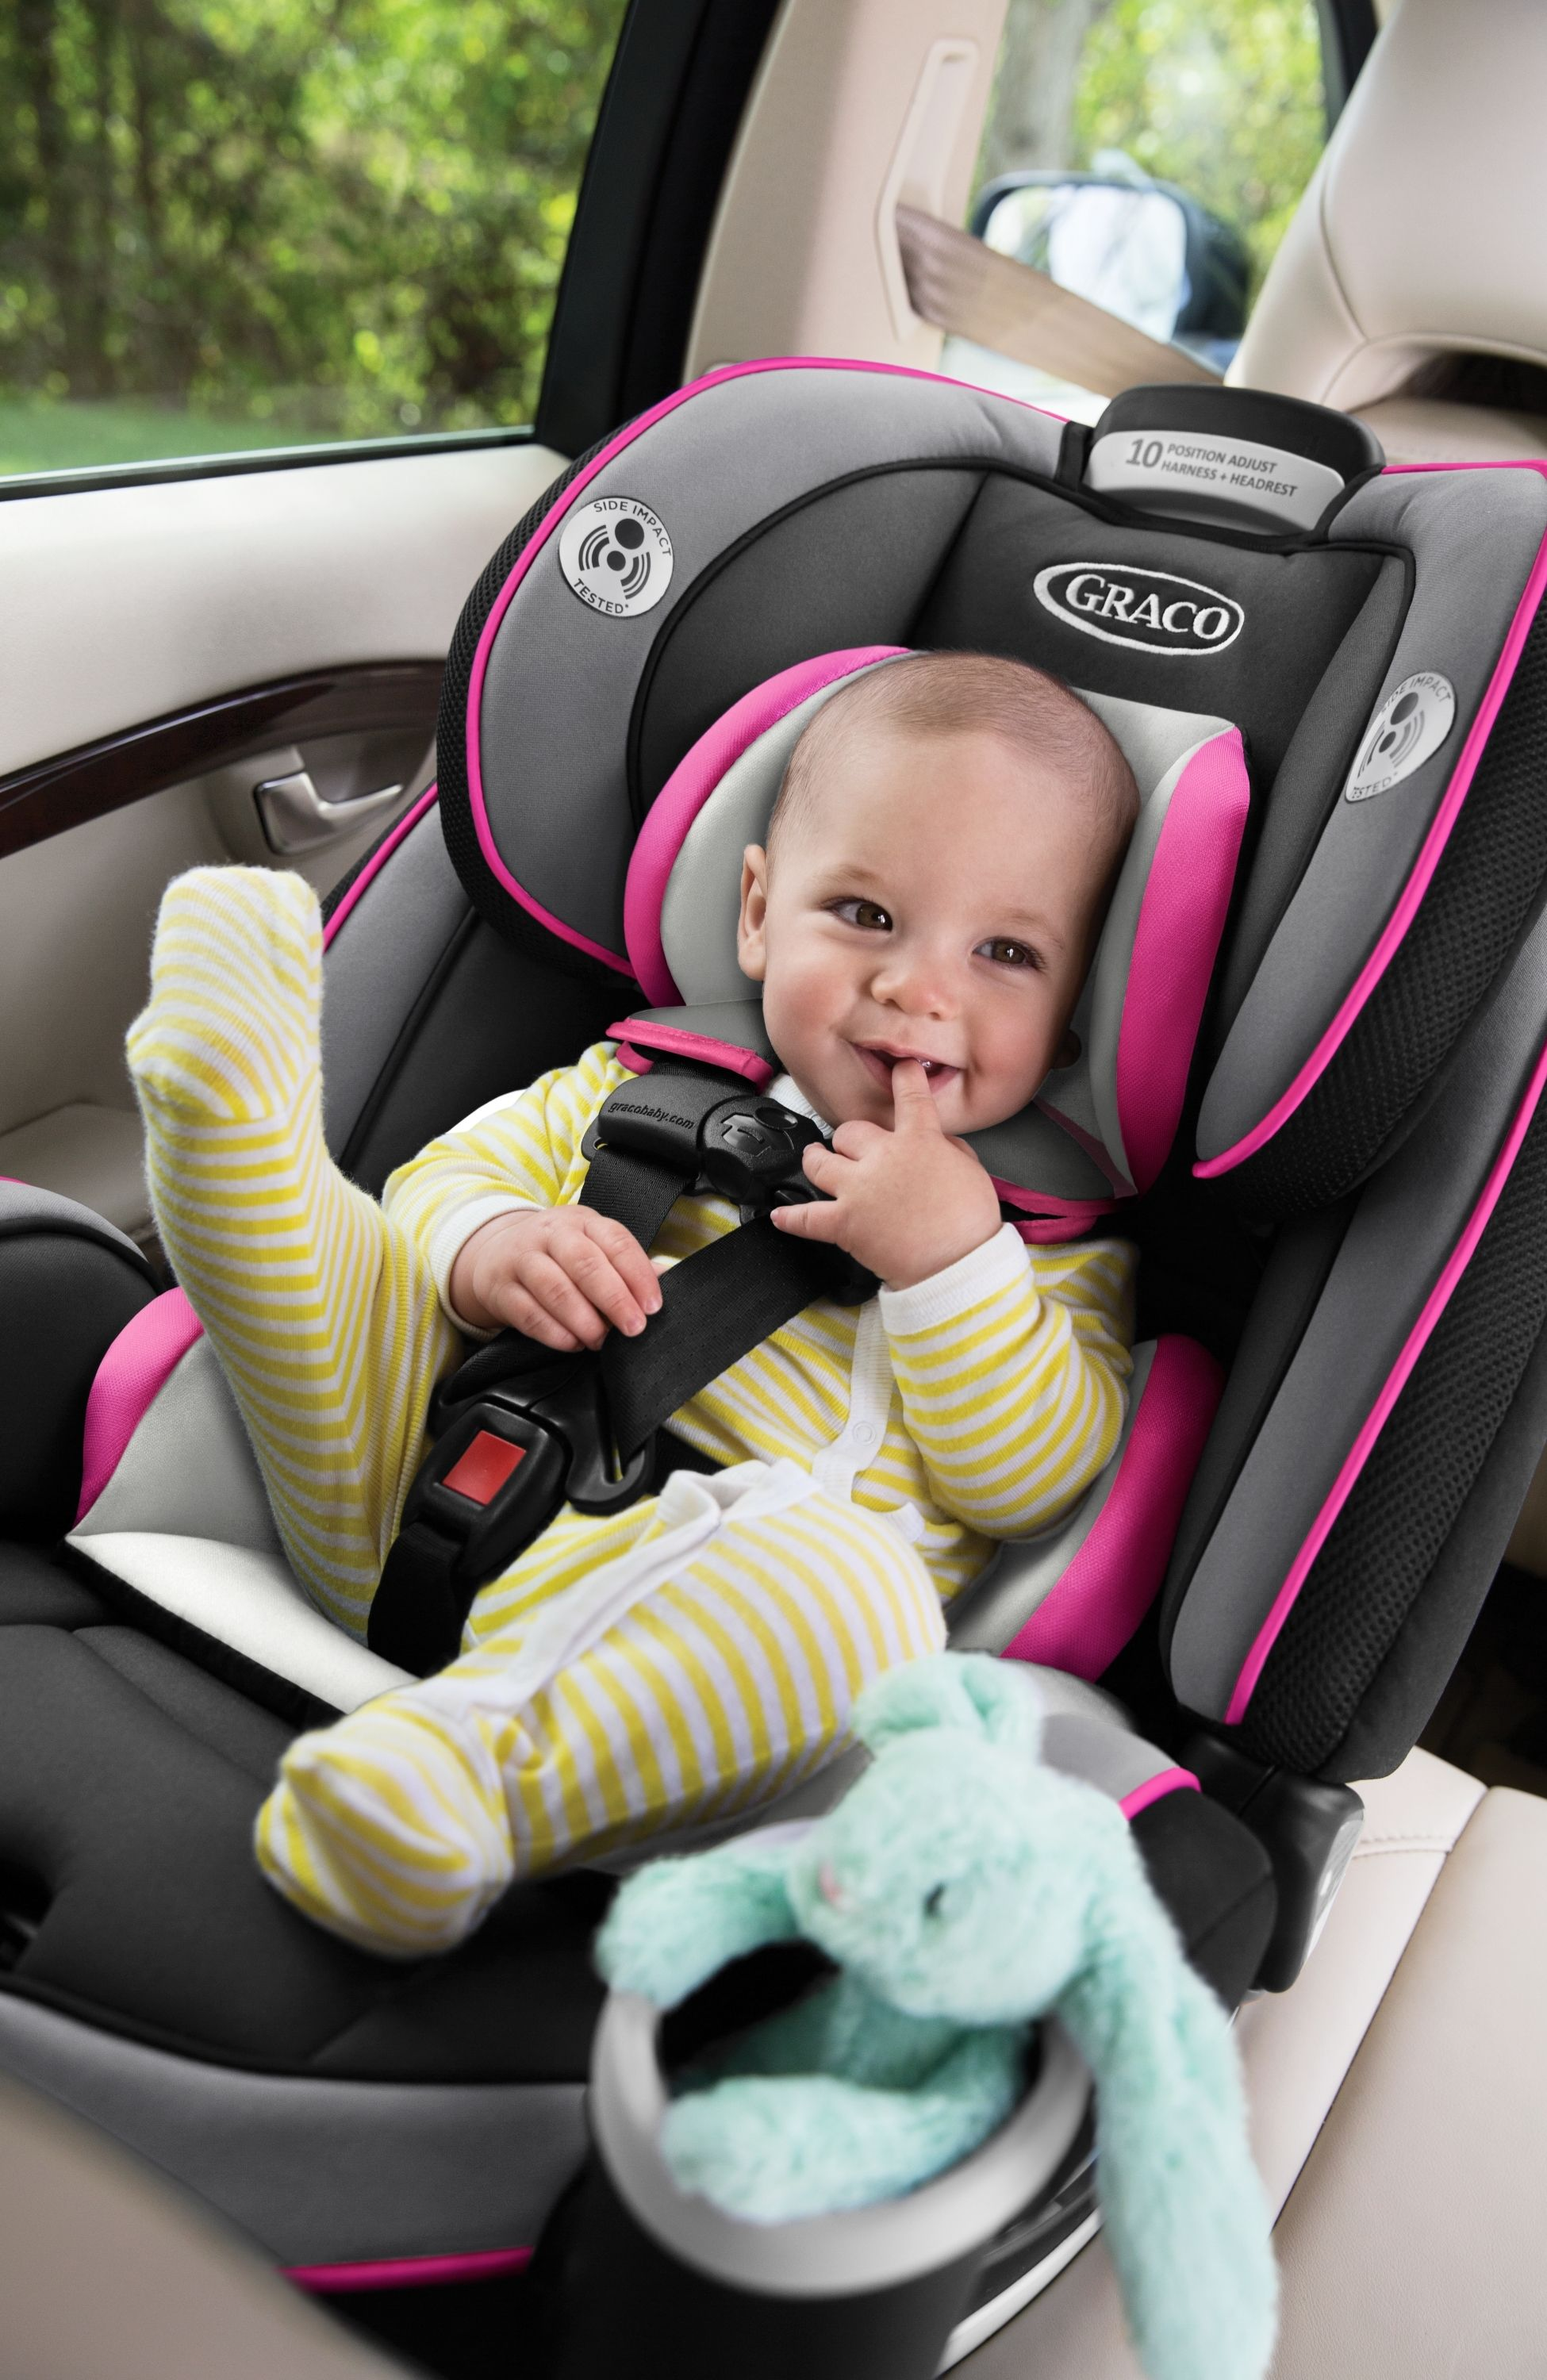 The Graco 4ever All In One Car Seat In Kylie Is The Only